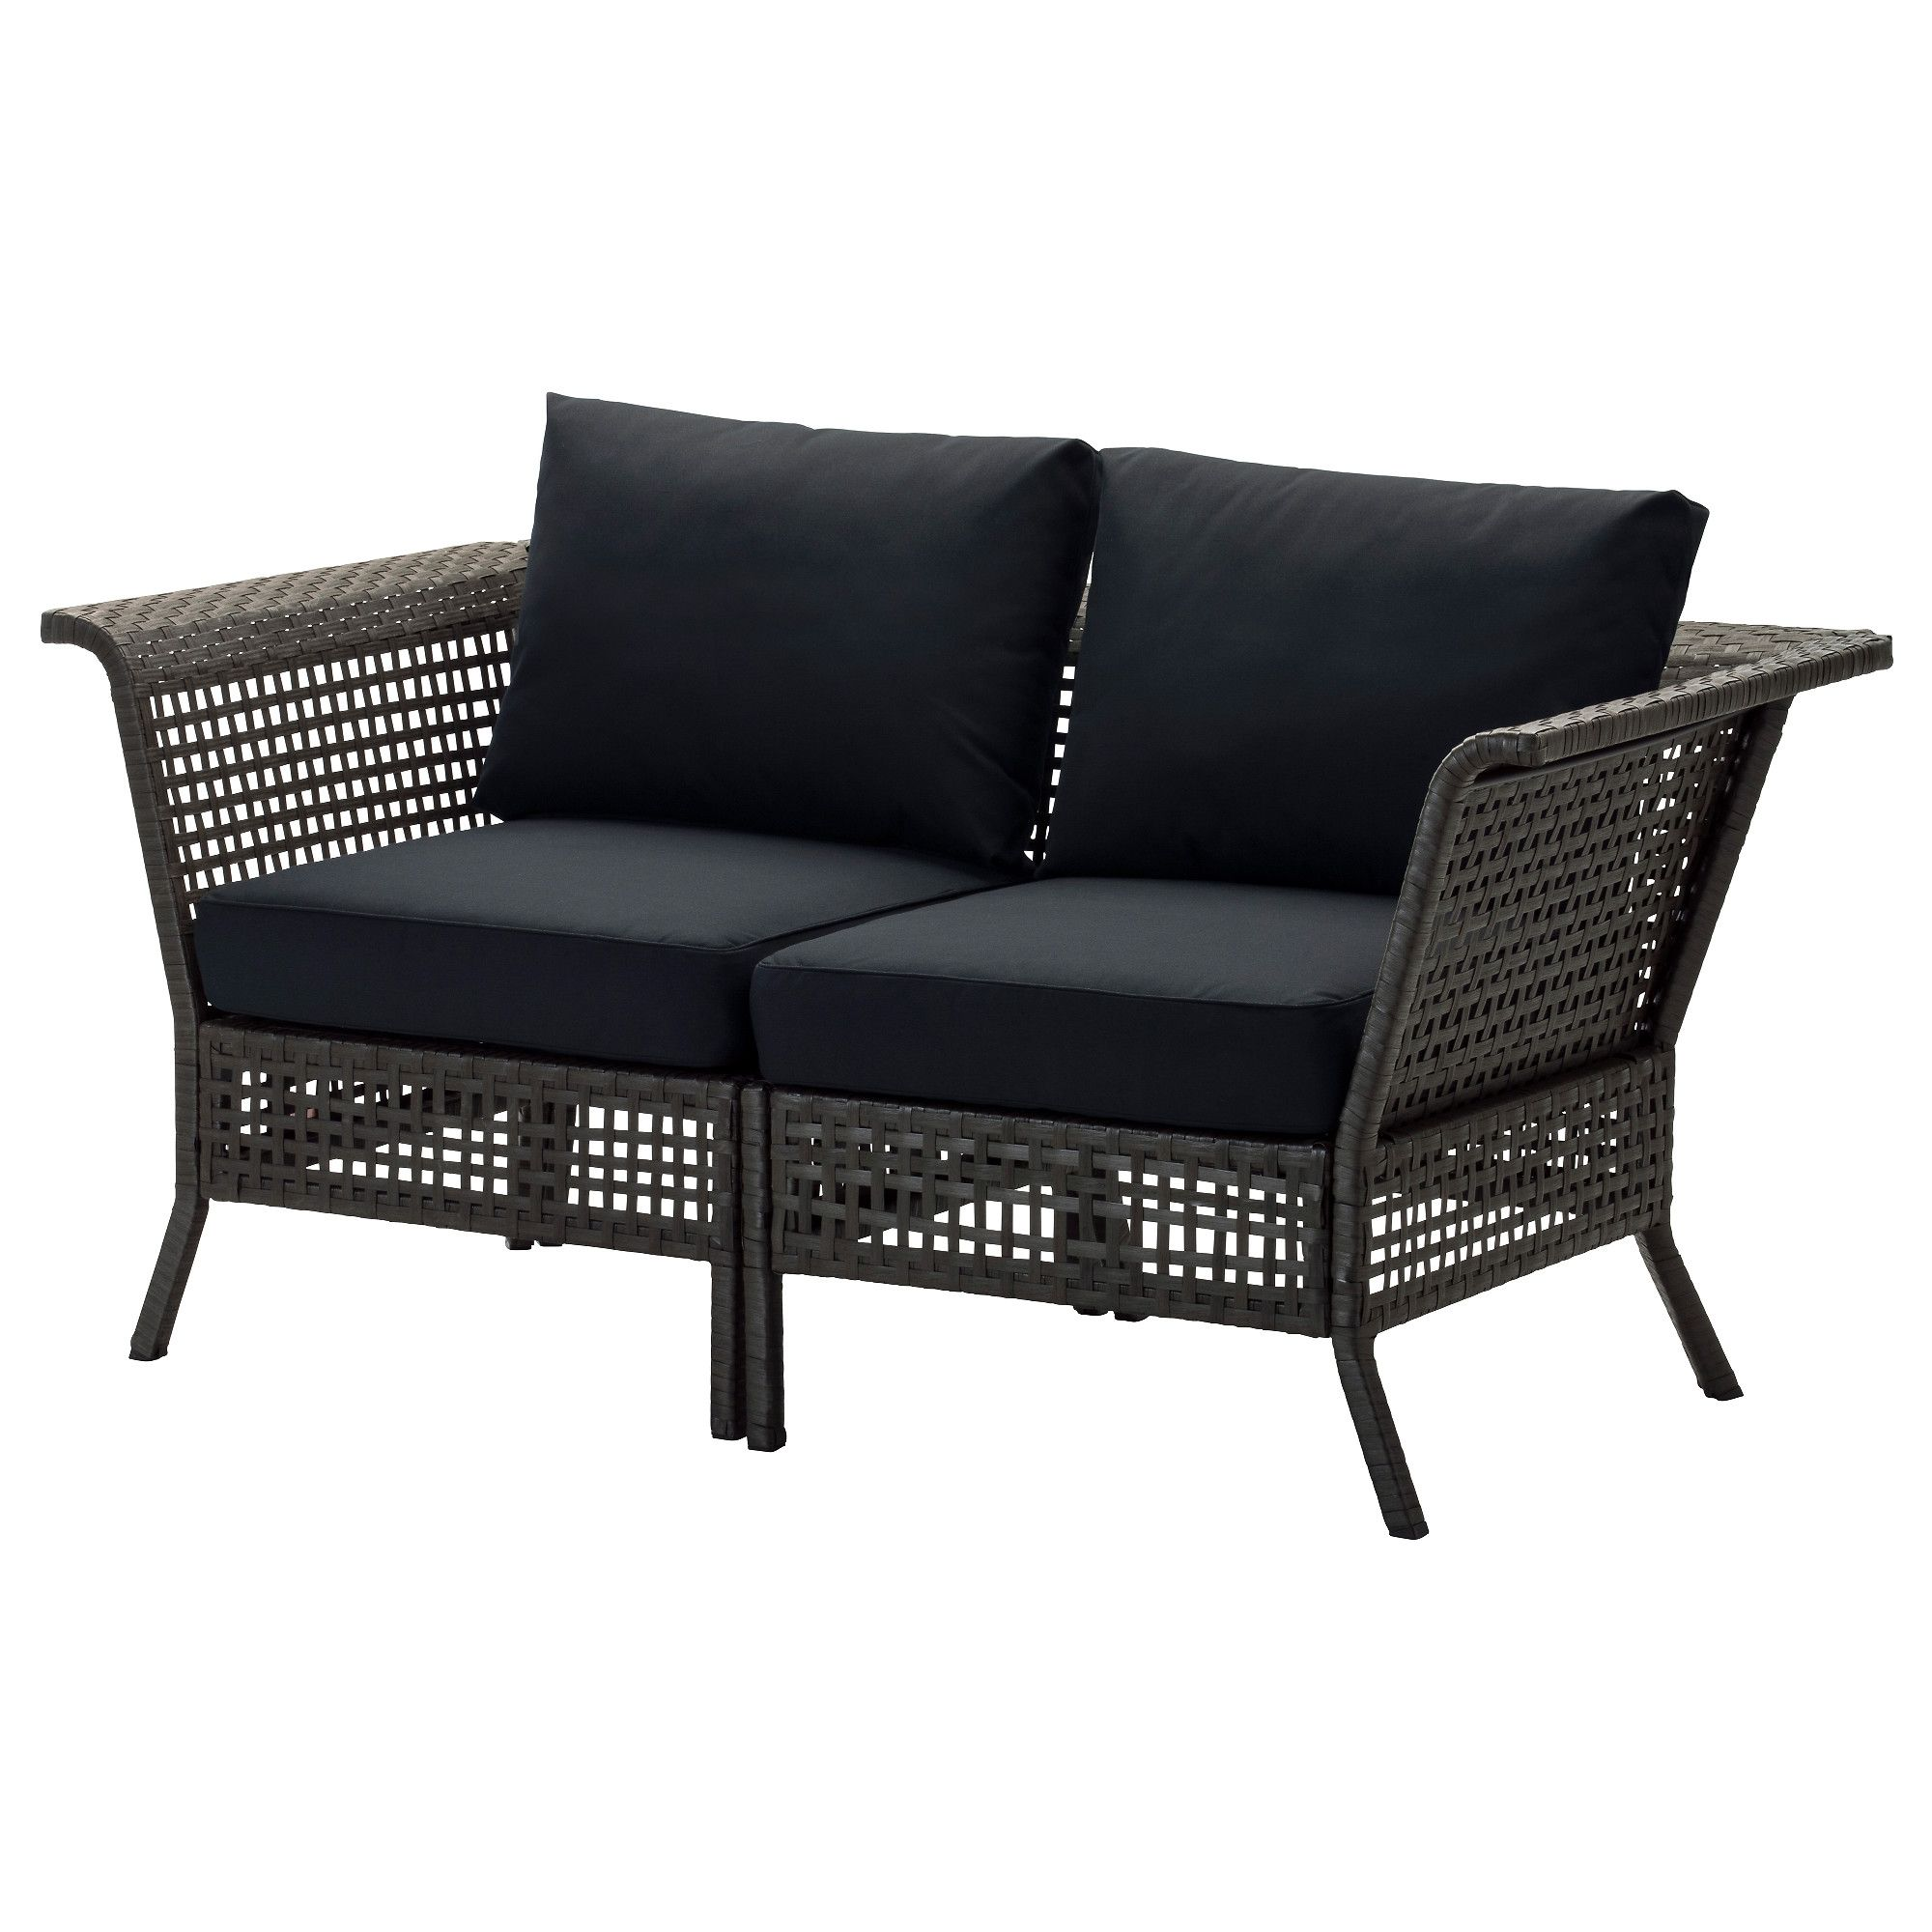 kungsholmen loveseat outdoor black brown kungs black ikea rh pinterest com